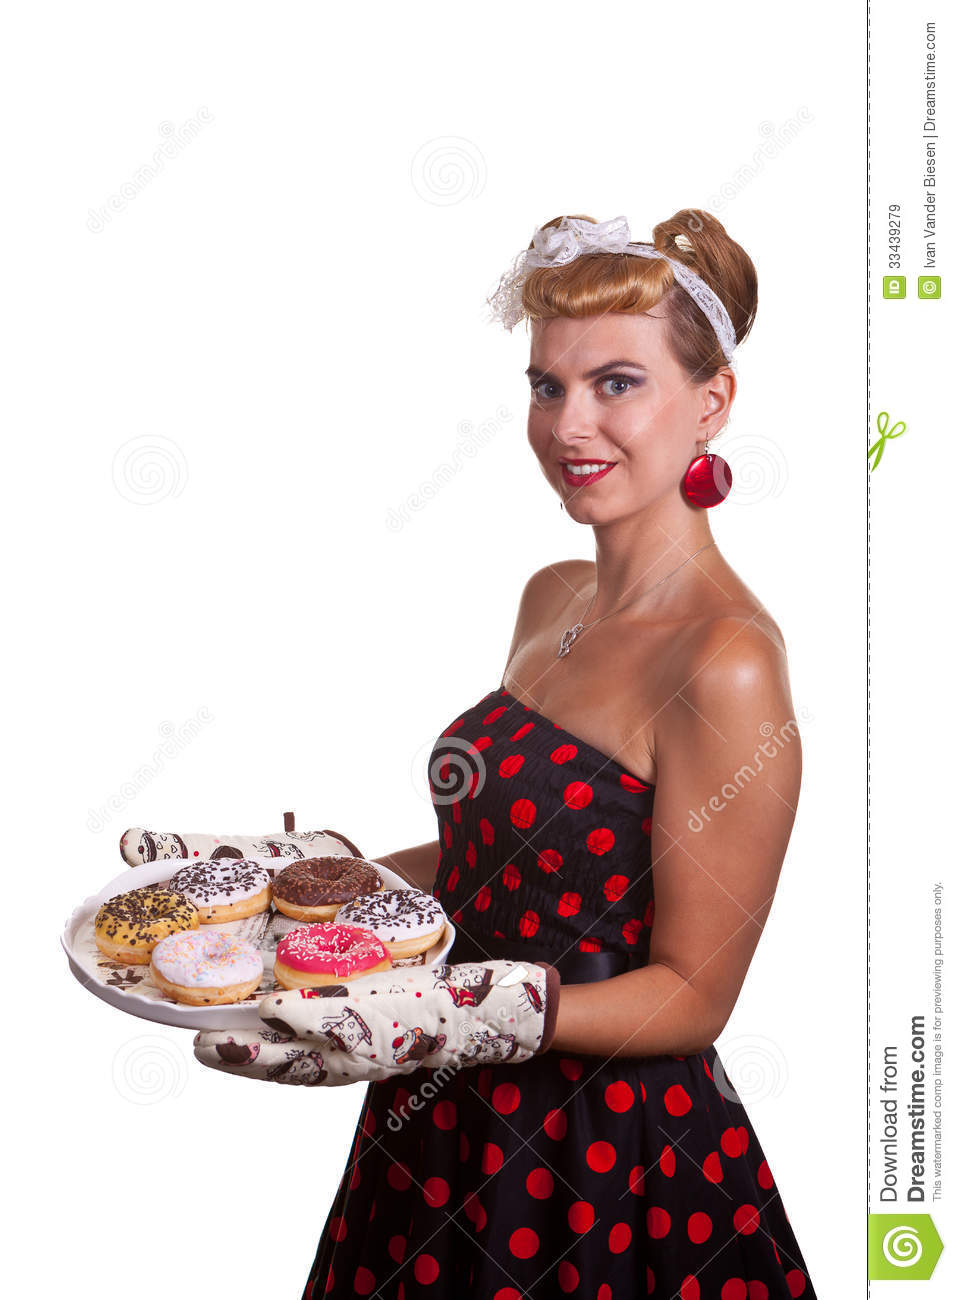 pin up girl with cakes stock image image of background 33439279. Black Bedroom Furniture Sets. Home Design Ideas